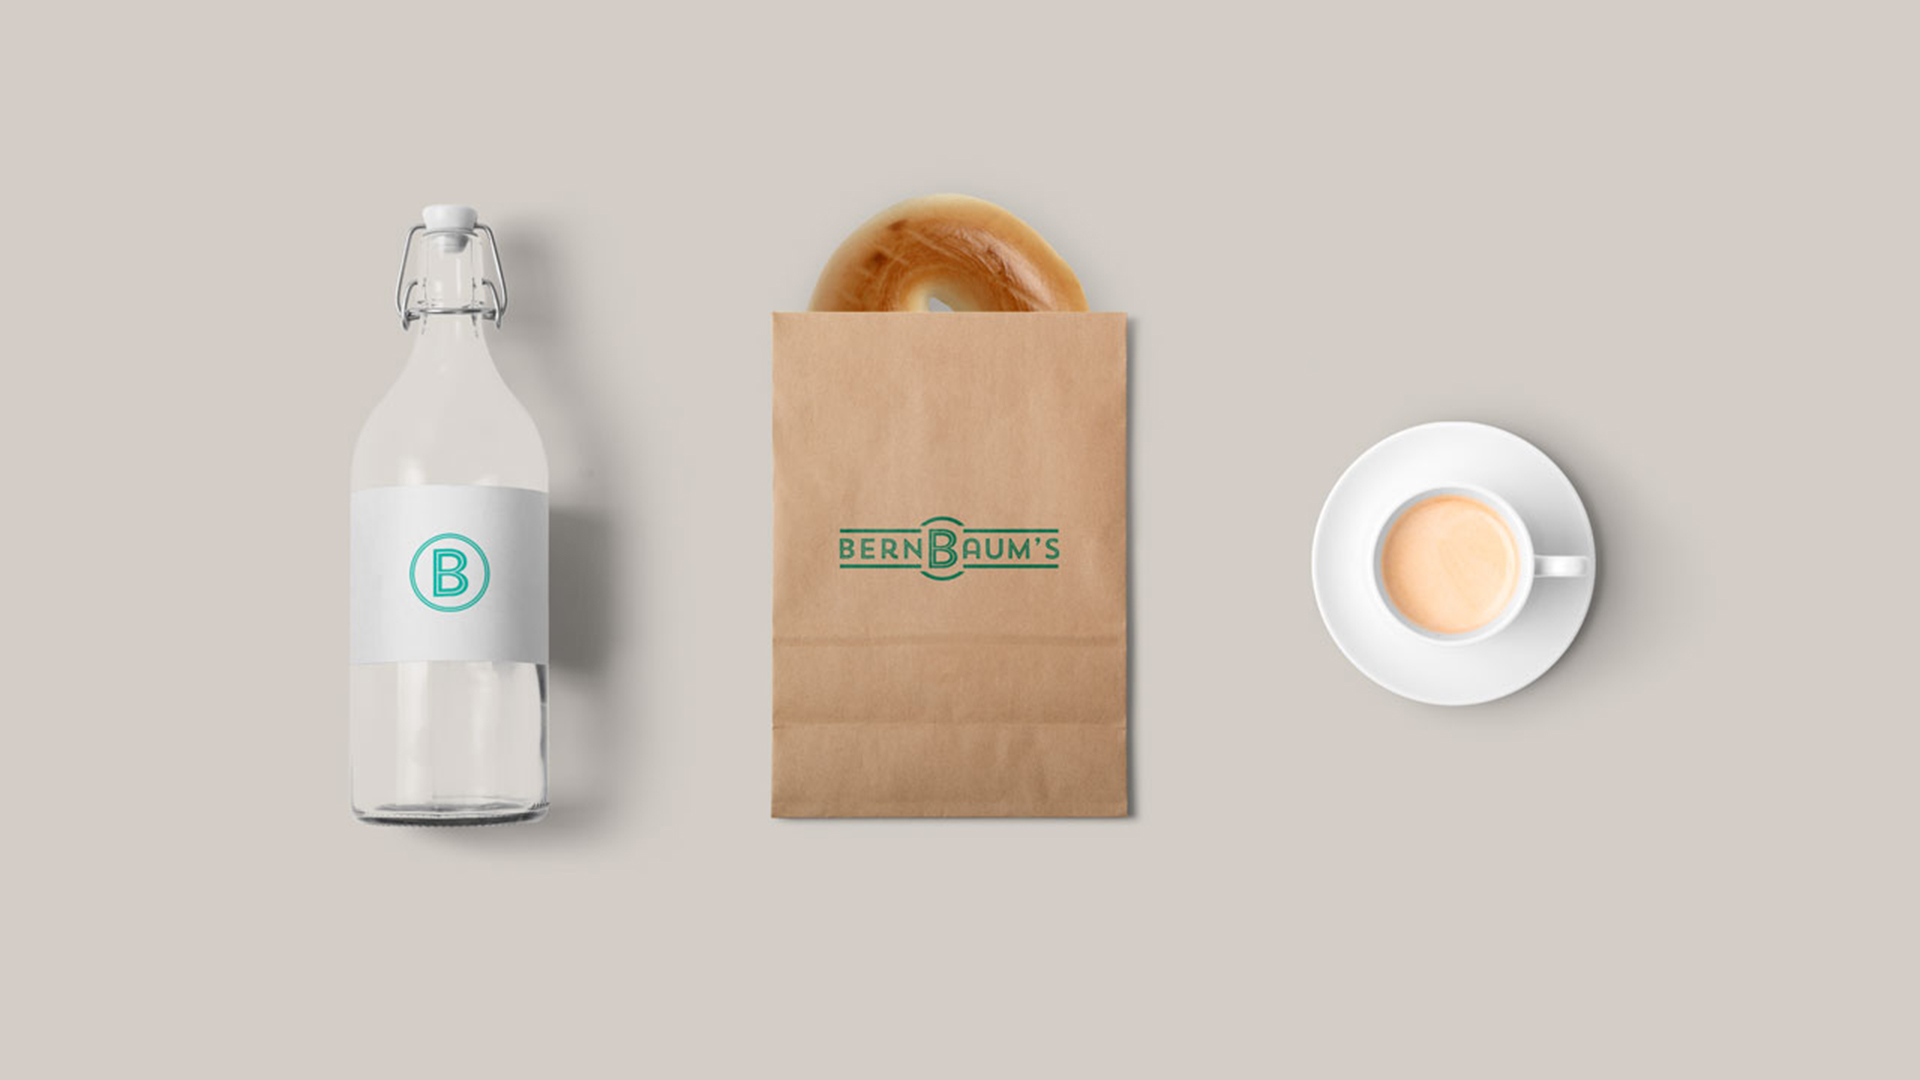 BernBaum's icon printed on water bottle label, logo printed in green on kraft bag with bagel poking out, and cup of coffee